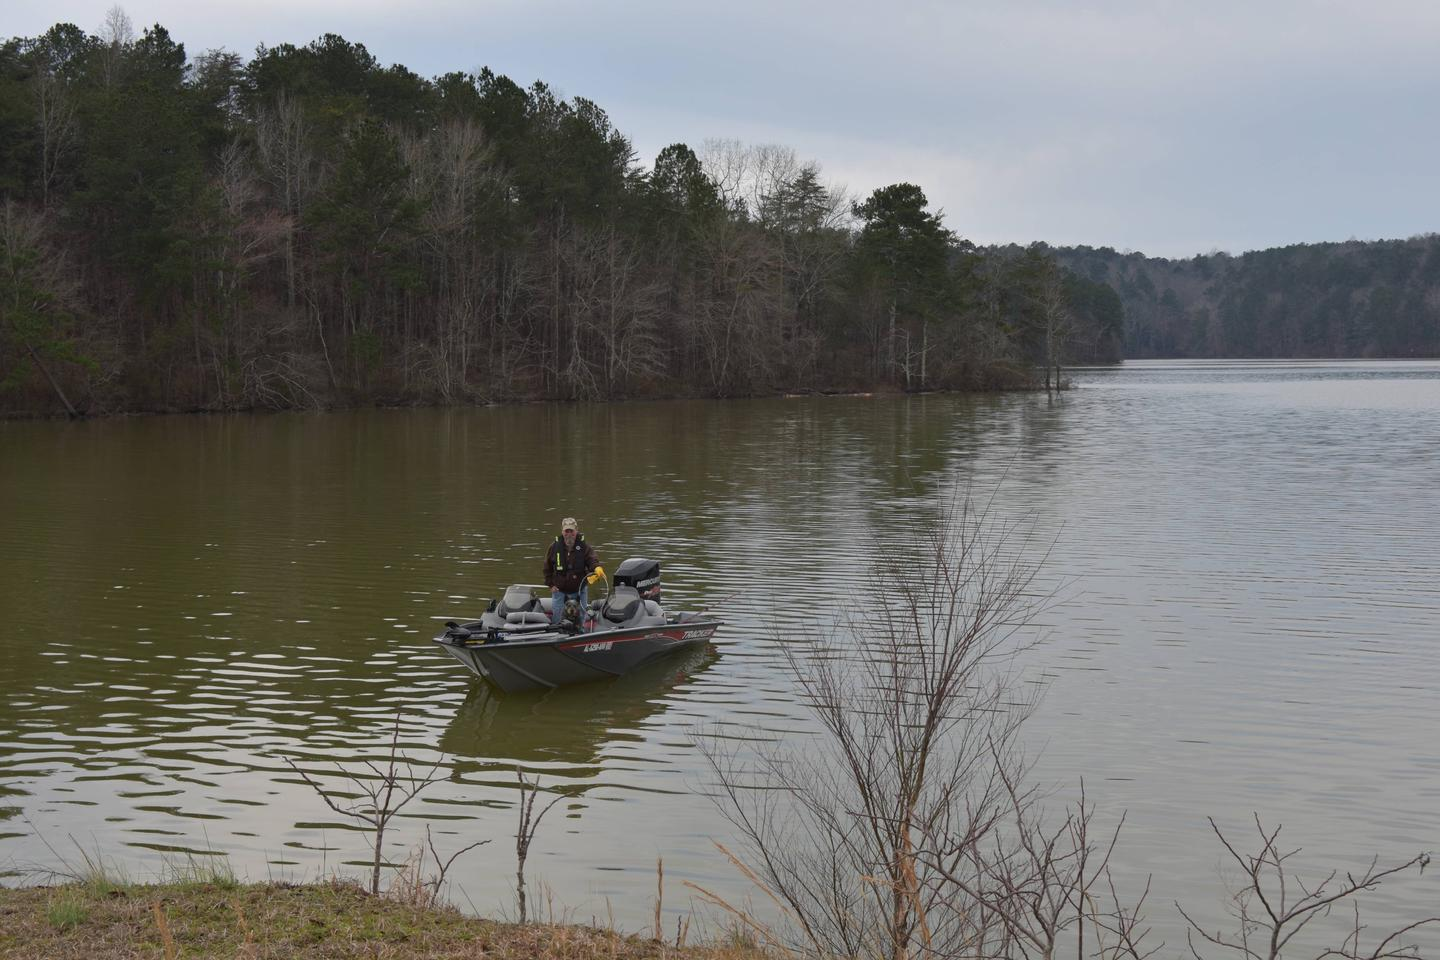 Clear Creek Public Boat Ramp - A man with his 2 best friends, his dog and his fishing boatClear Creek Public Boat Ramp - A man with his 2 best friends, his dog and his fishing boat March 1st, 2020